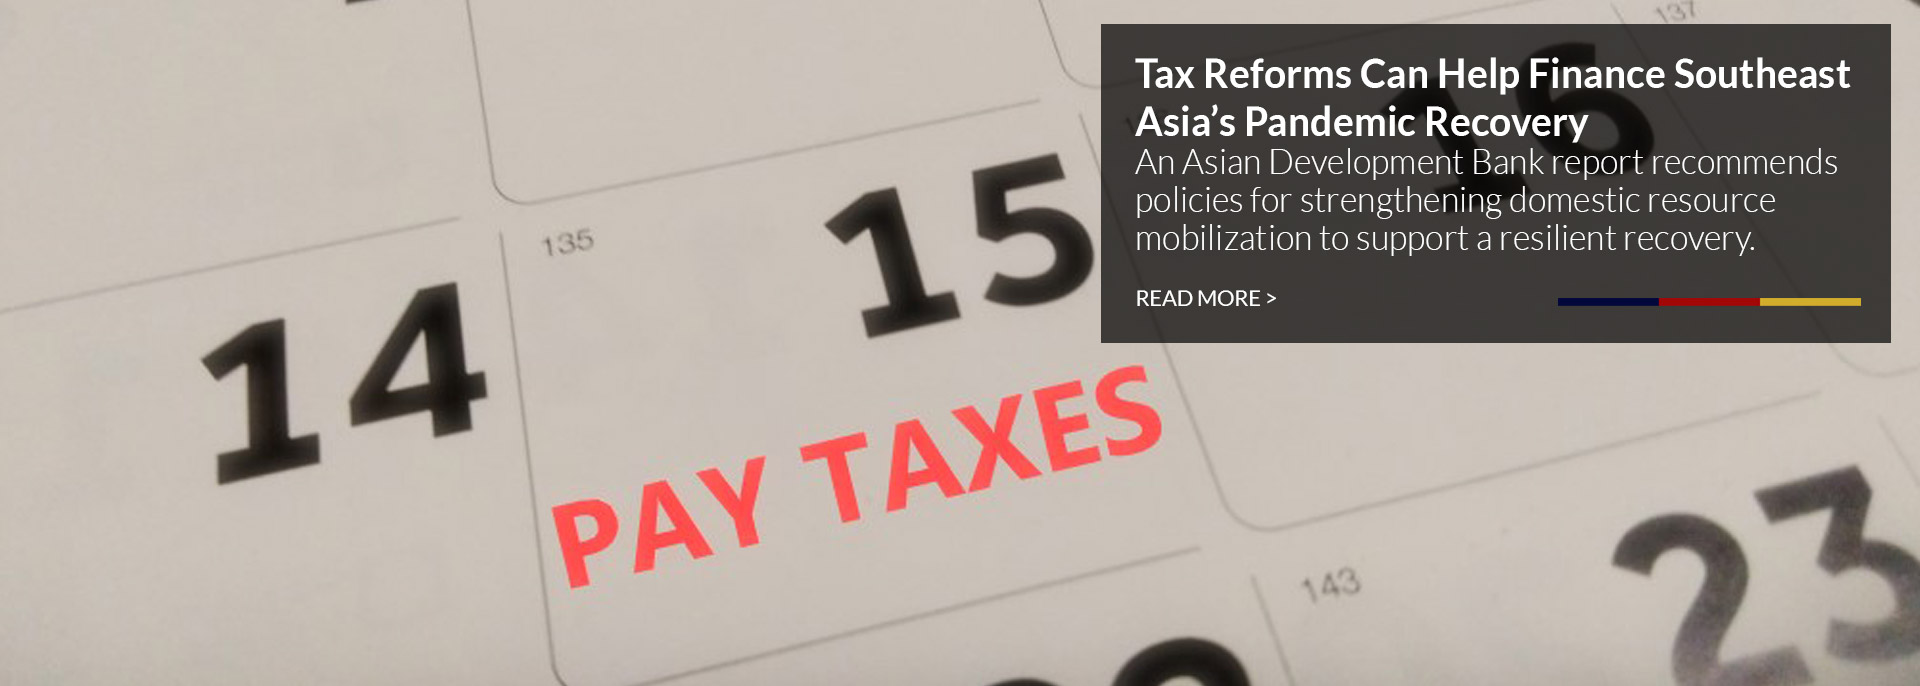 Calendar with the 15th day marked with Pay Taxes